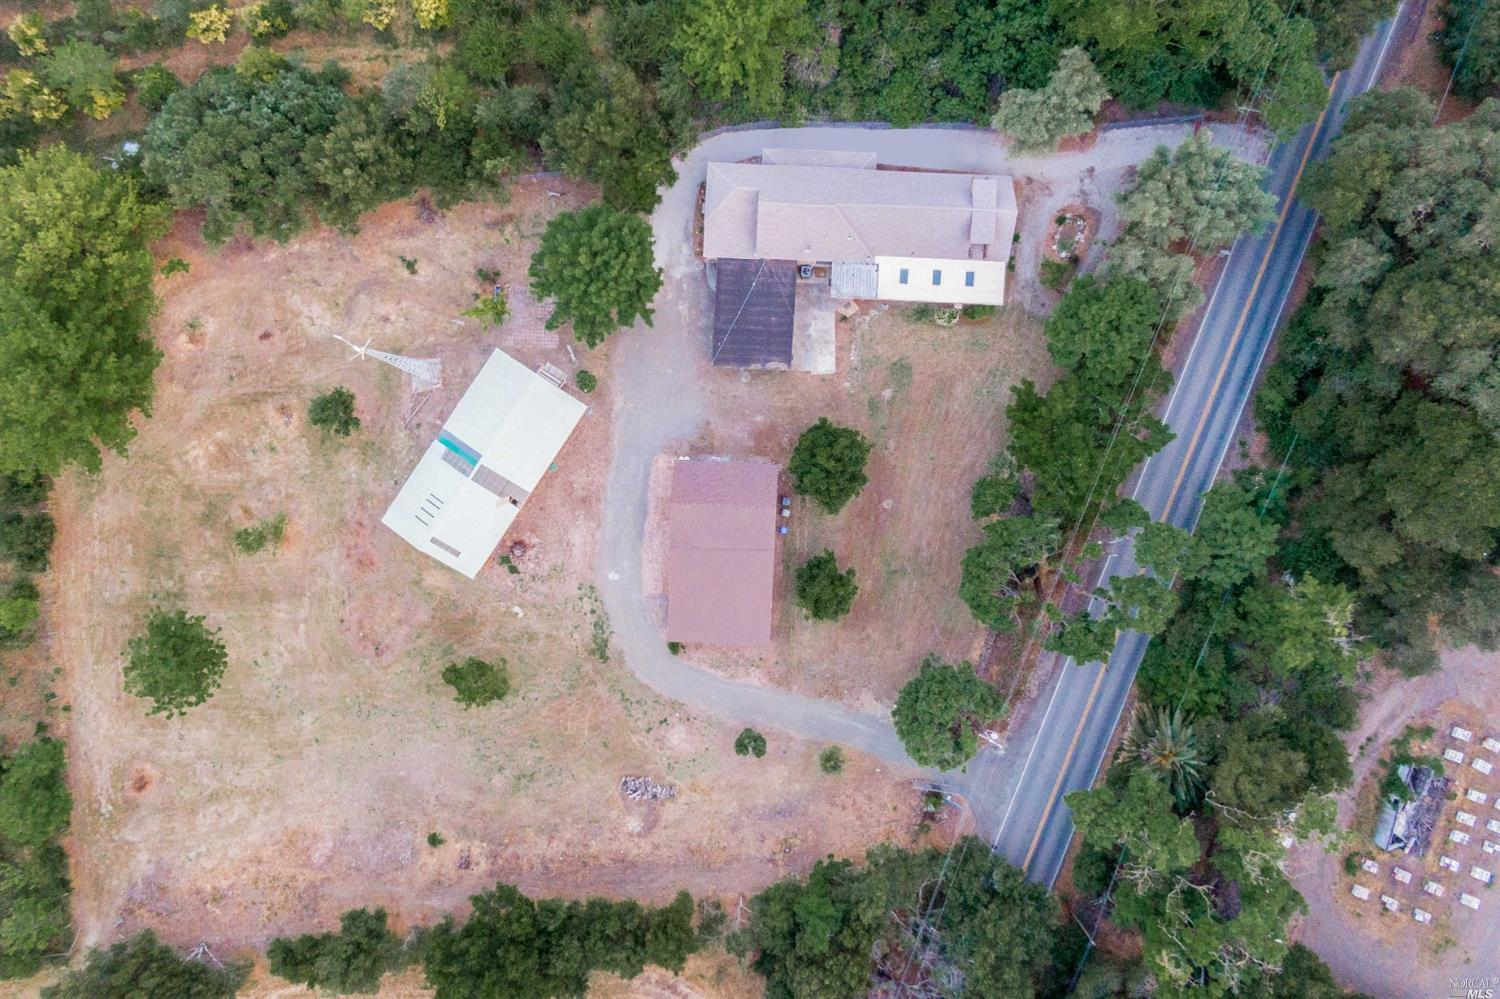 1.47 Acres,in Old Town Cordelia. This Property has a updated/remodeled 1929 4 bedroom+Loft+Sun-room home.Along with a Barn+loft,Pool House and Flat usable land. Nearest neighbor 600 feet away,two sides only.The classic ranch/farm style home is made of Redwood,has been completely updated,with plumbing,electrical,paint,Hawaii Curly laminate floors,updated Kitchen with bay windows and Granite counters,newer water heater, Central A/c refurbished and has central Heat.Big Red Barn built in the 1930's made of Redwood on slab has electrical outlets all over,has a Large upstairs loft, newer roof,exterior painted last year and 3 large entrances.Comes with 2 John Deere tractors Big and little 1976/950 both in working condition.Fabulous Swimming Pool i